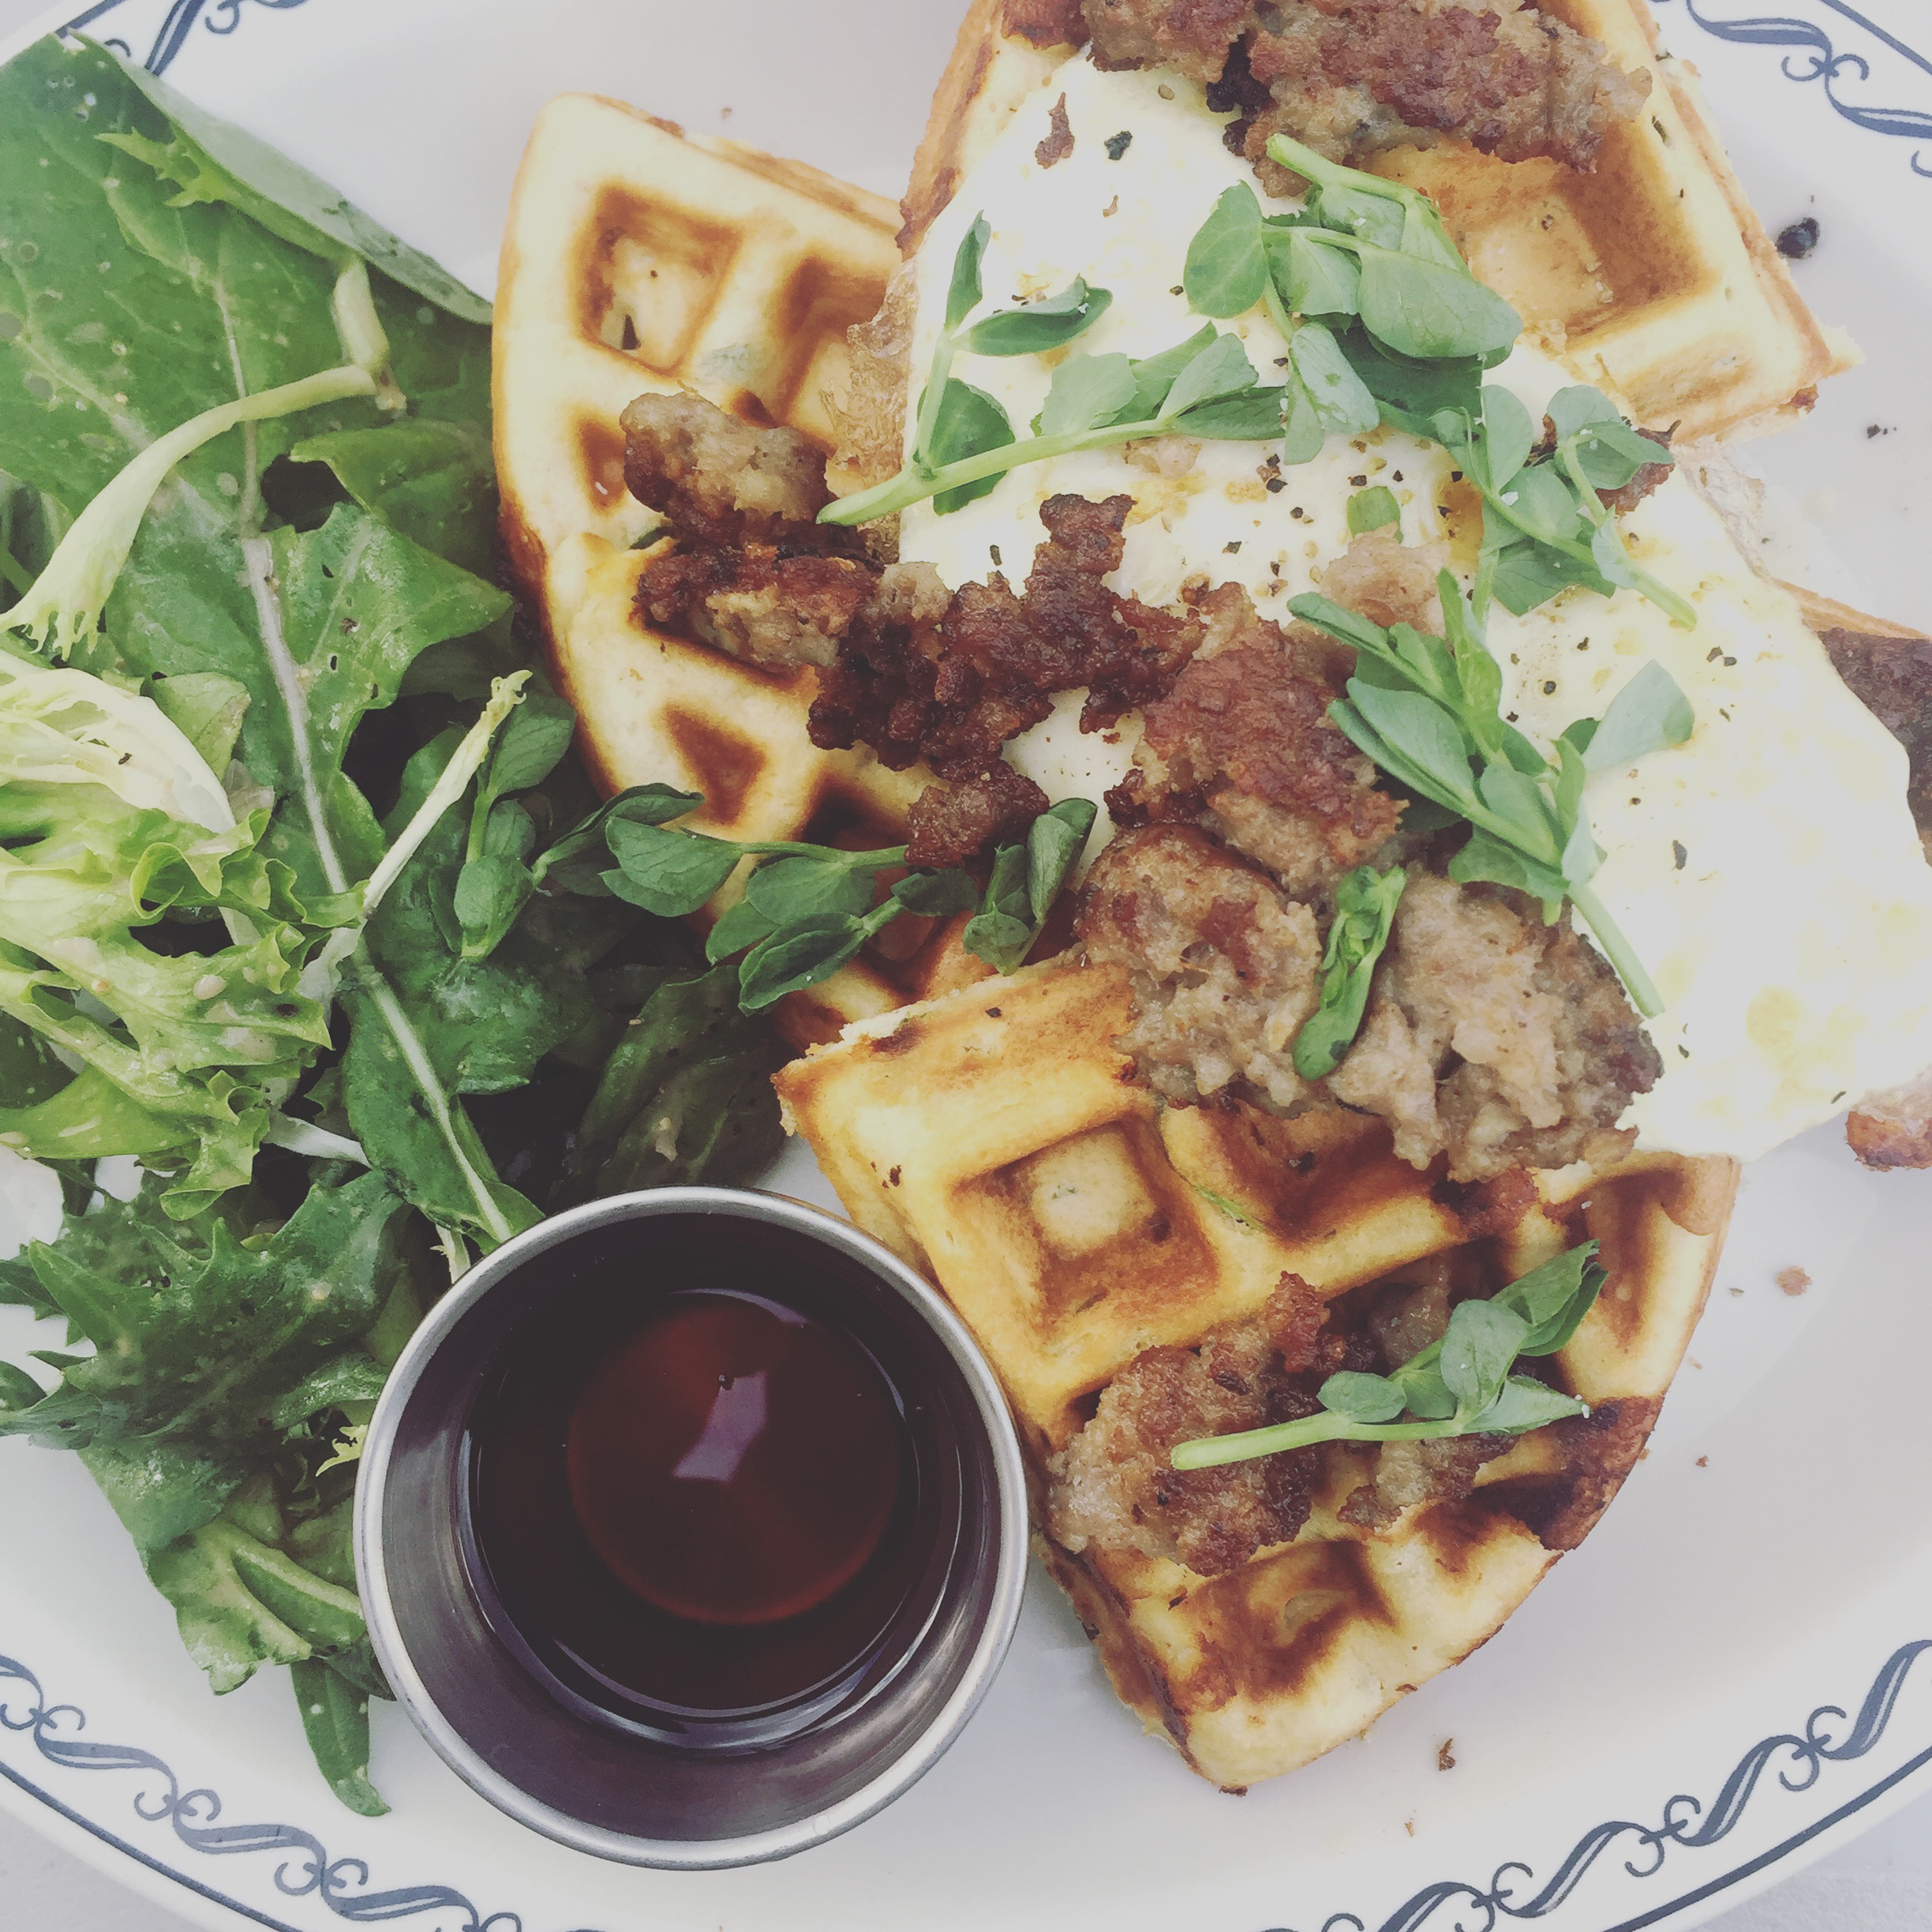 The Savory Waffle at scratch eatery Farmhouse is to die for!